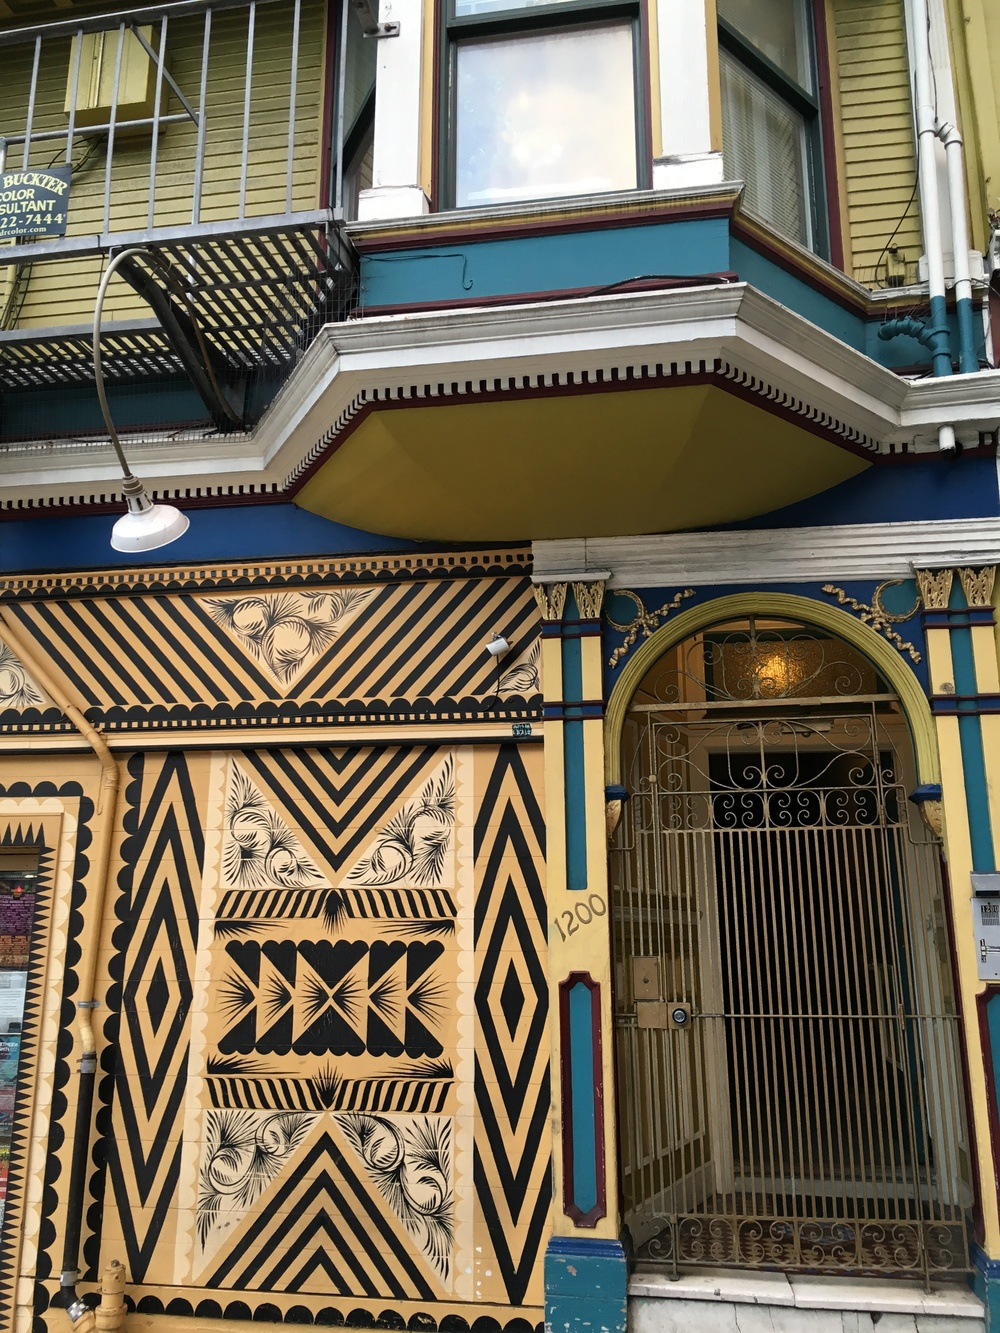 This is the door to our place, and also where the Haunted Haight tour starts. I don't actually know if it's called that but if it isn't, it's a real missed opportunity.